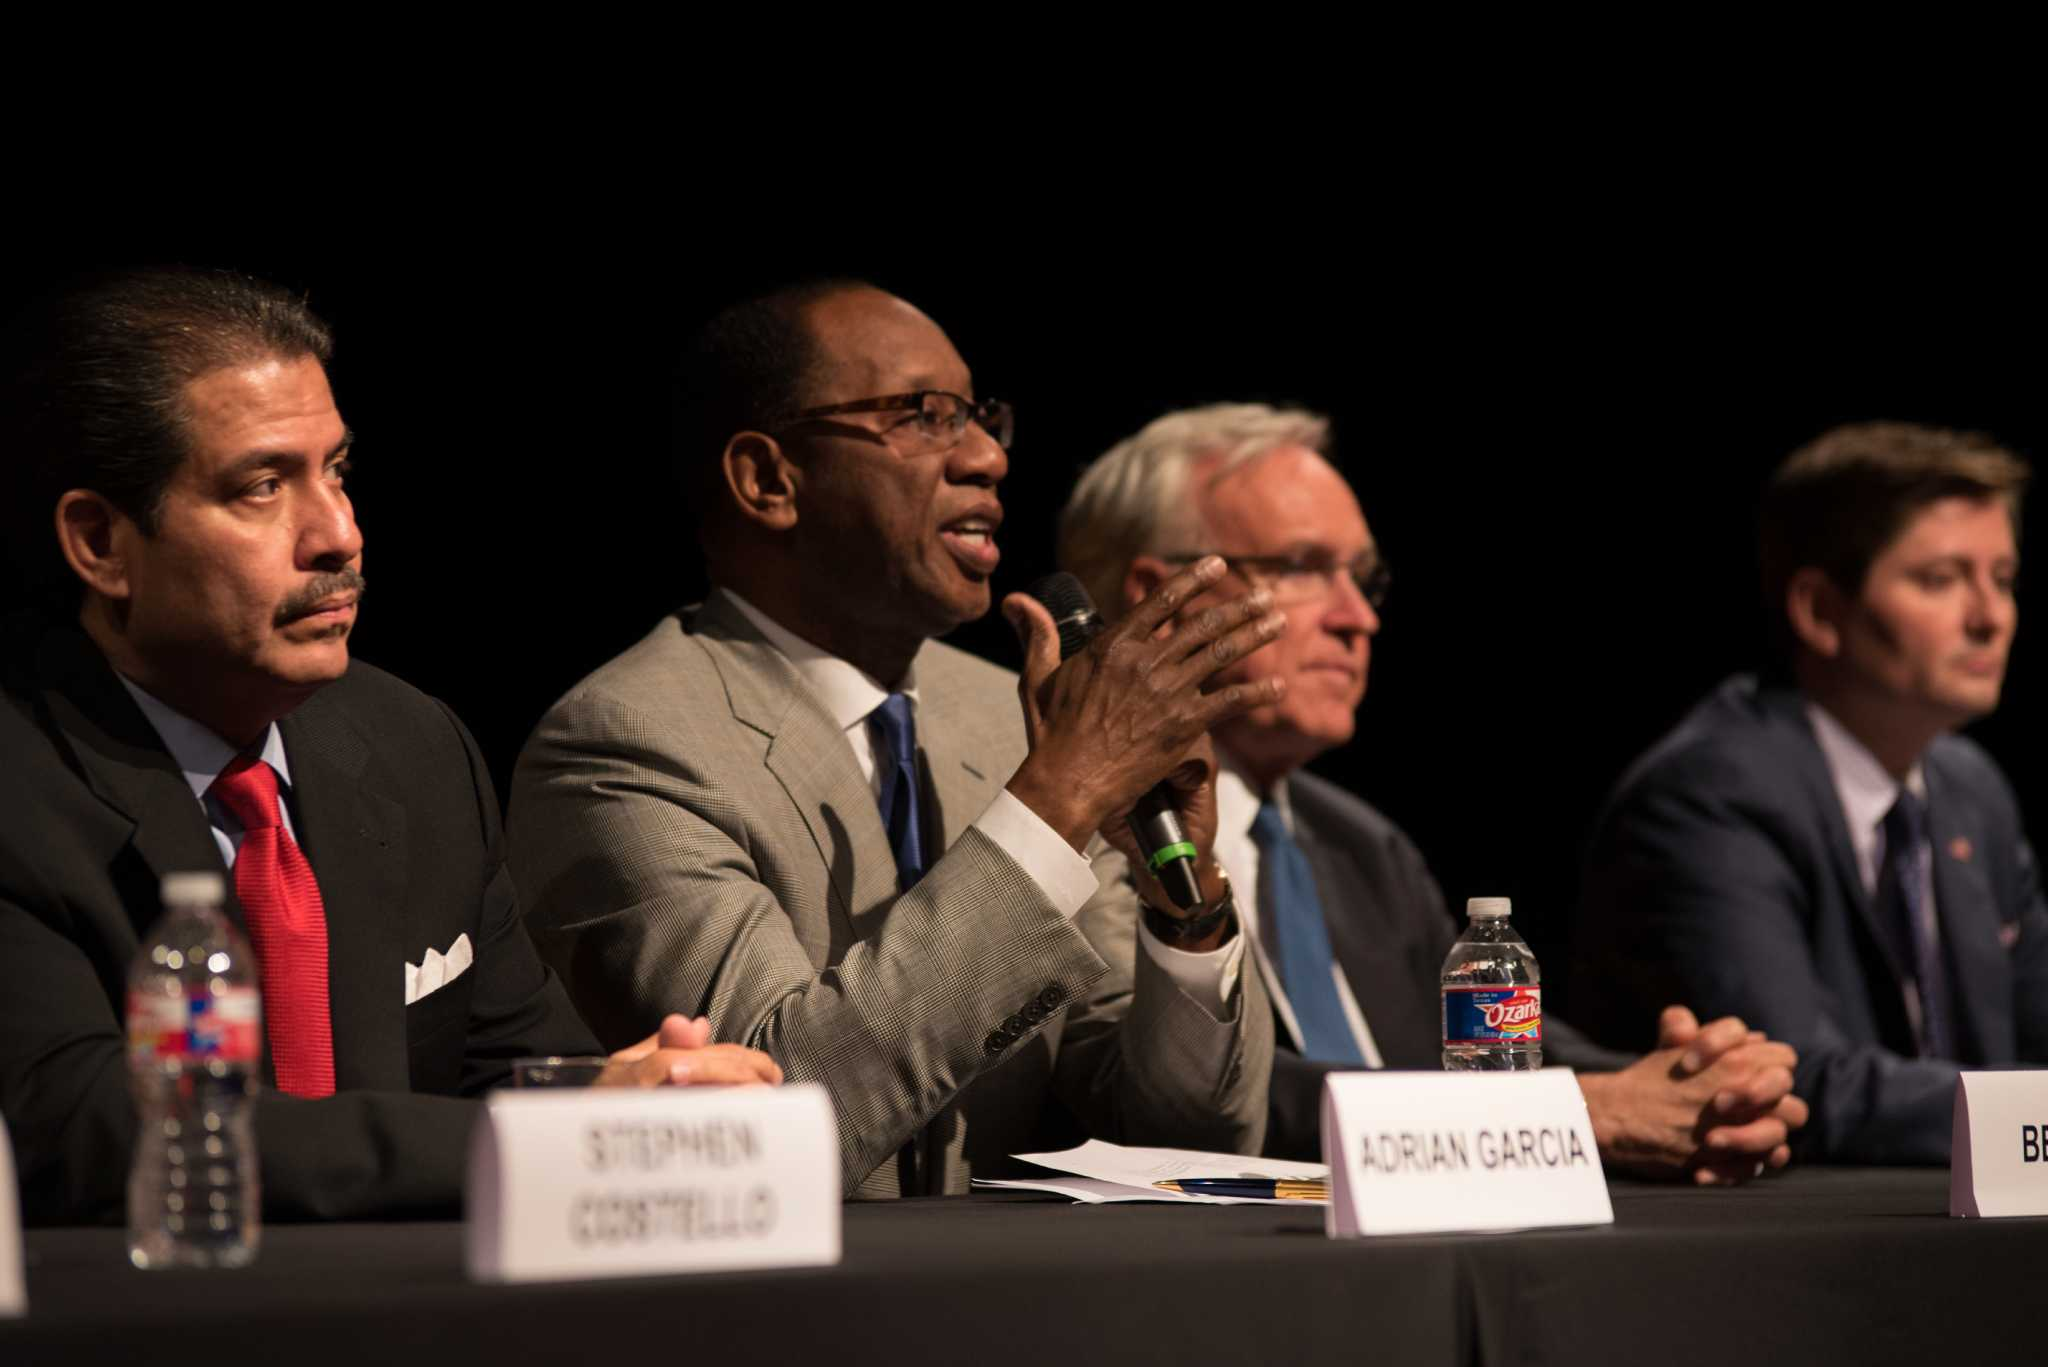 Rawimage Tensions Flare Turner Hall Mayoral Forum